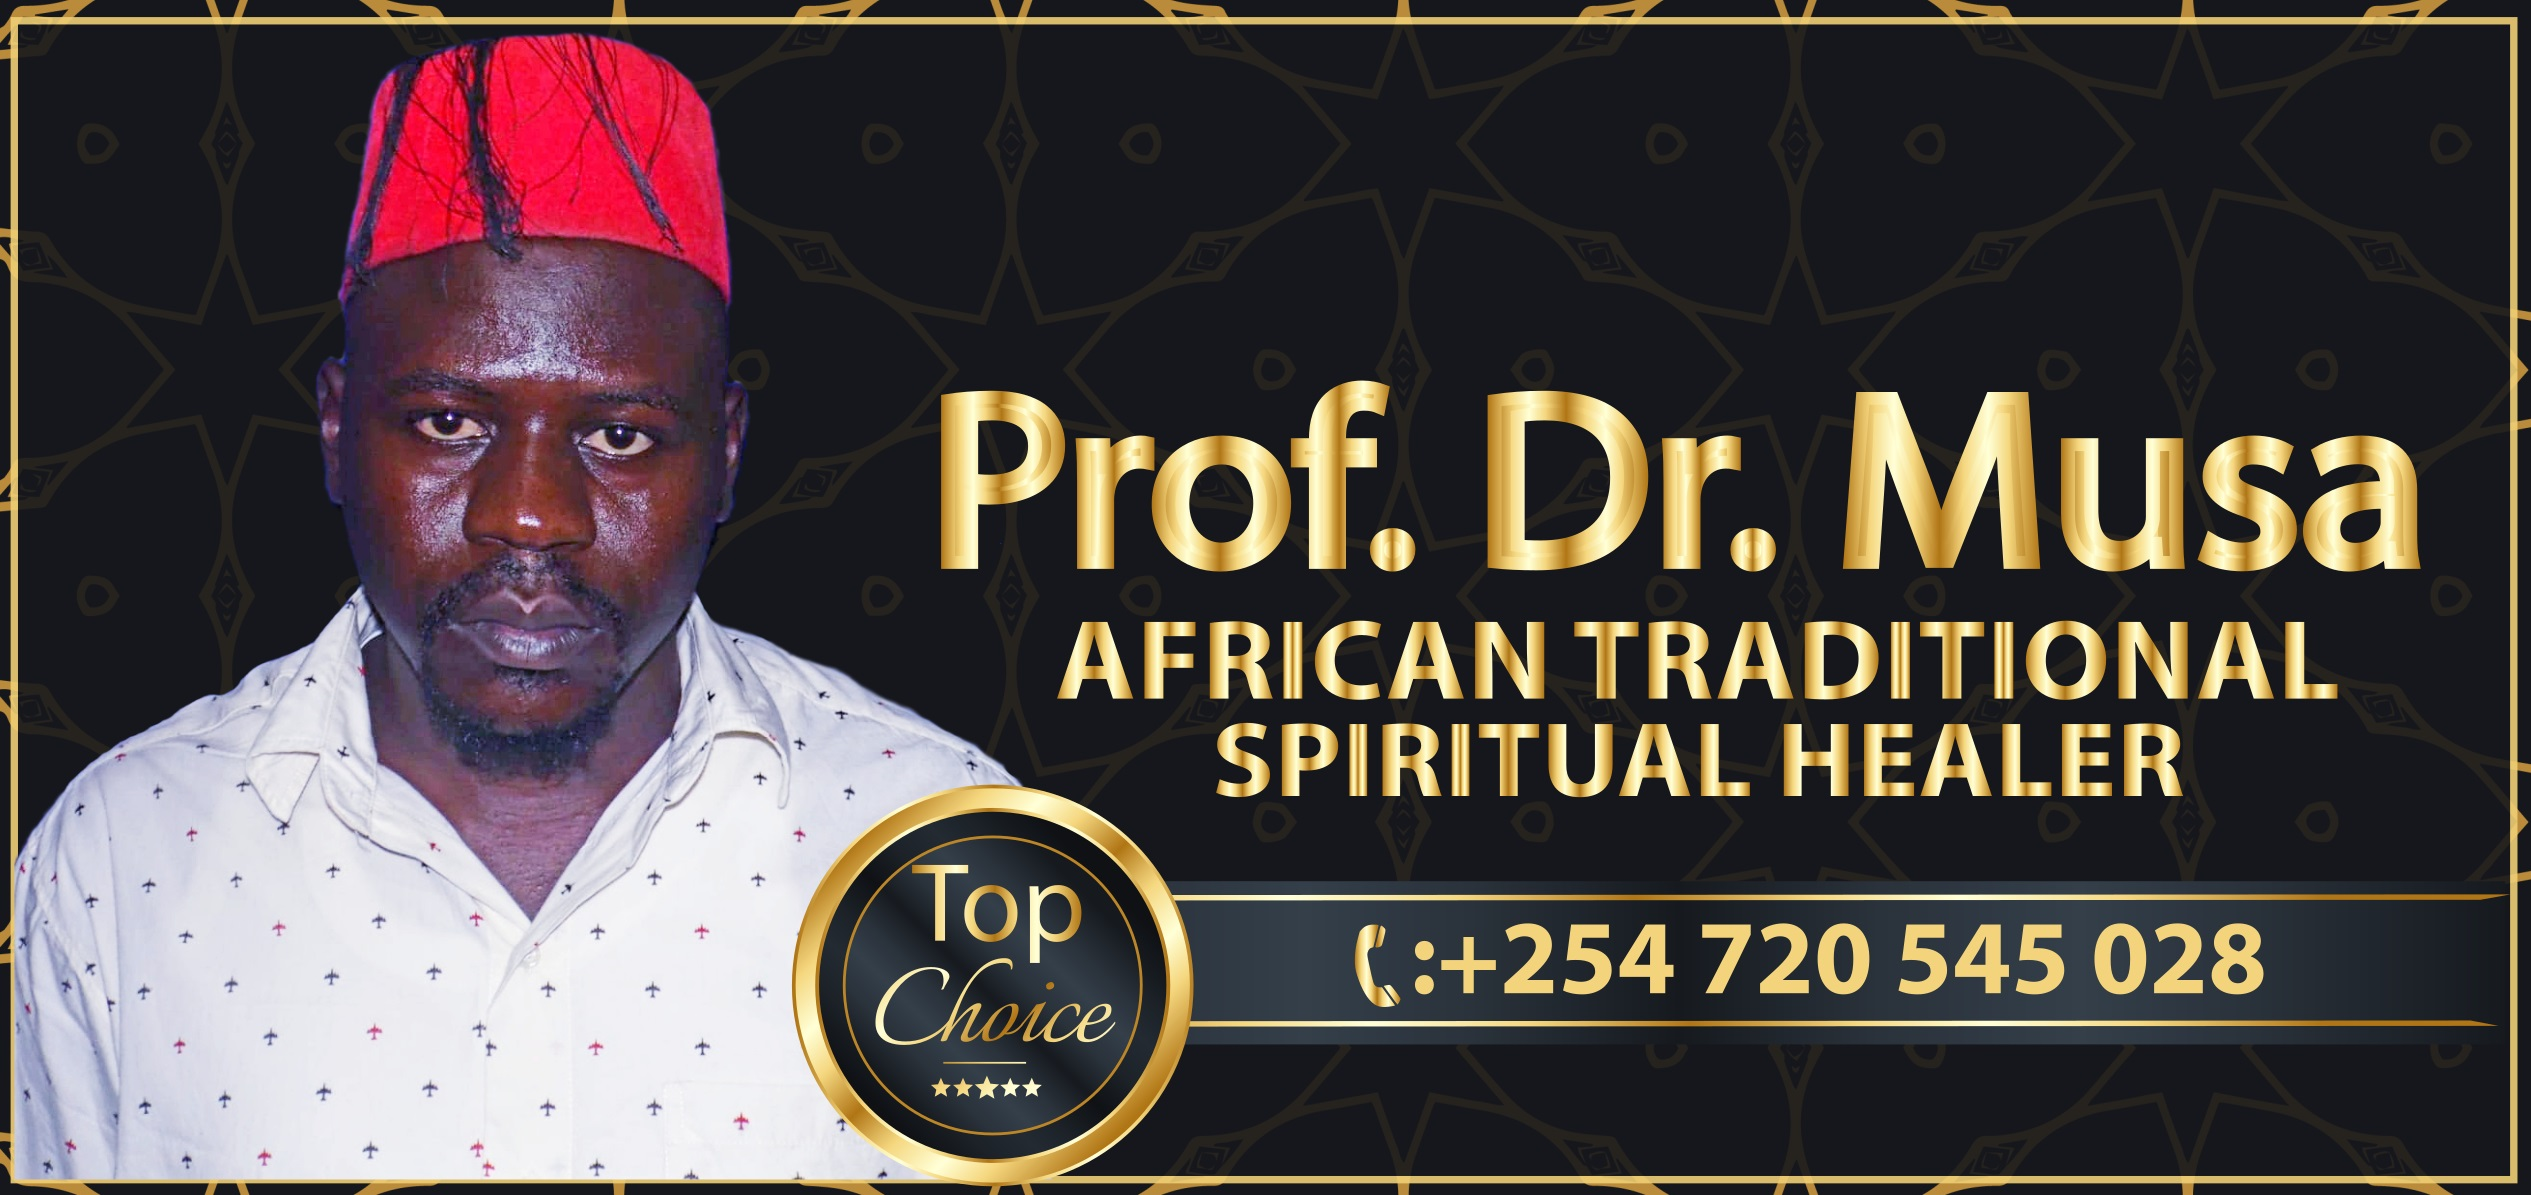 about-prof-dr-musa